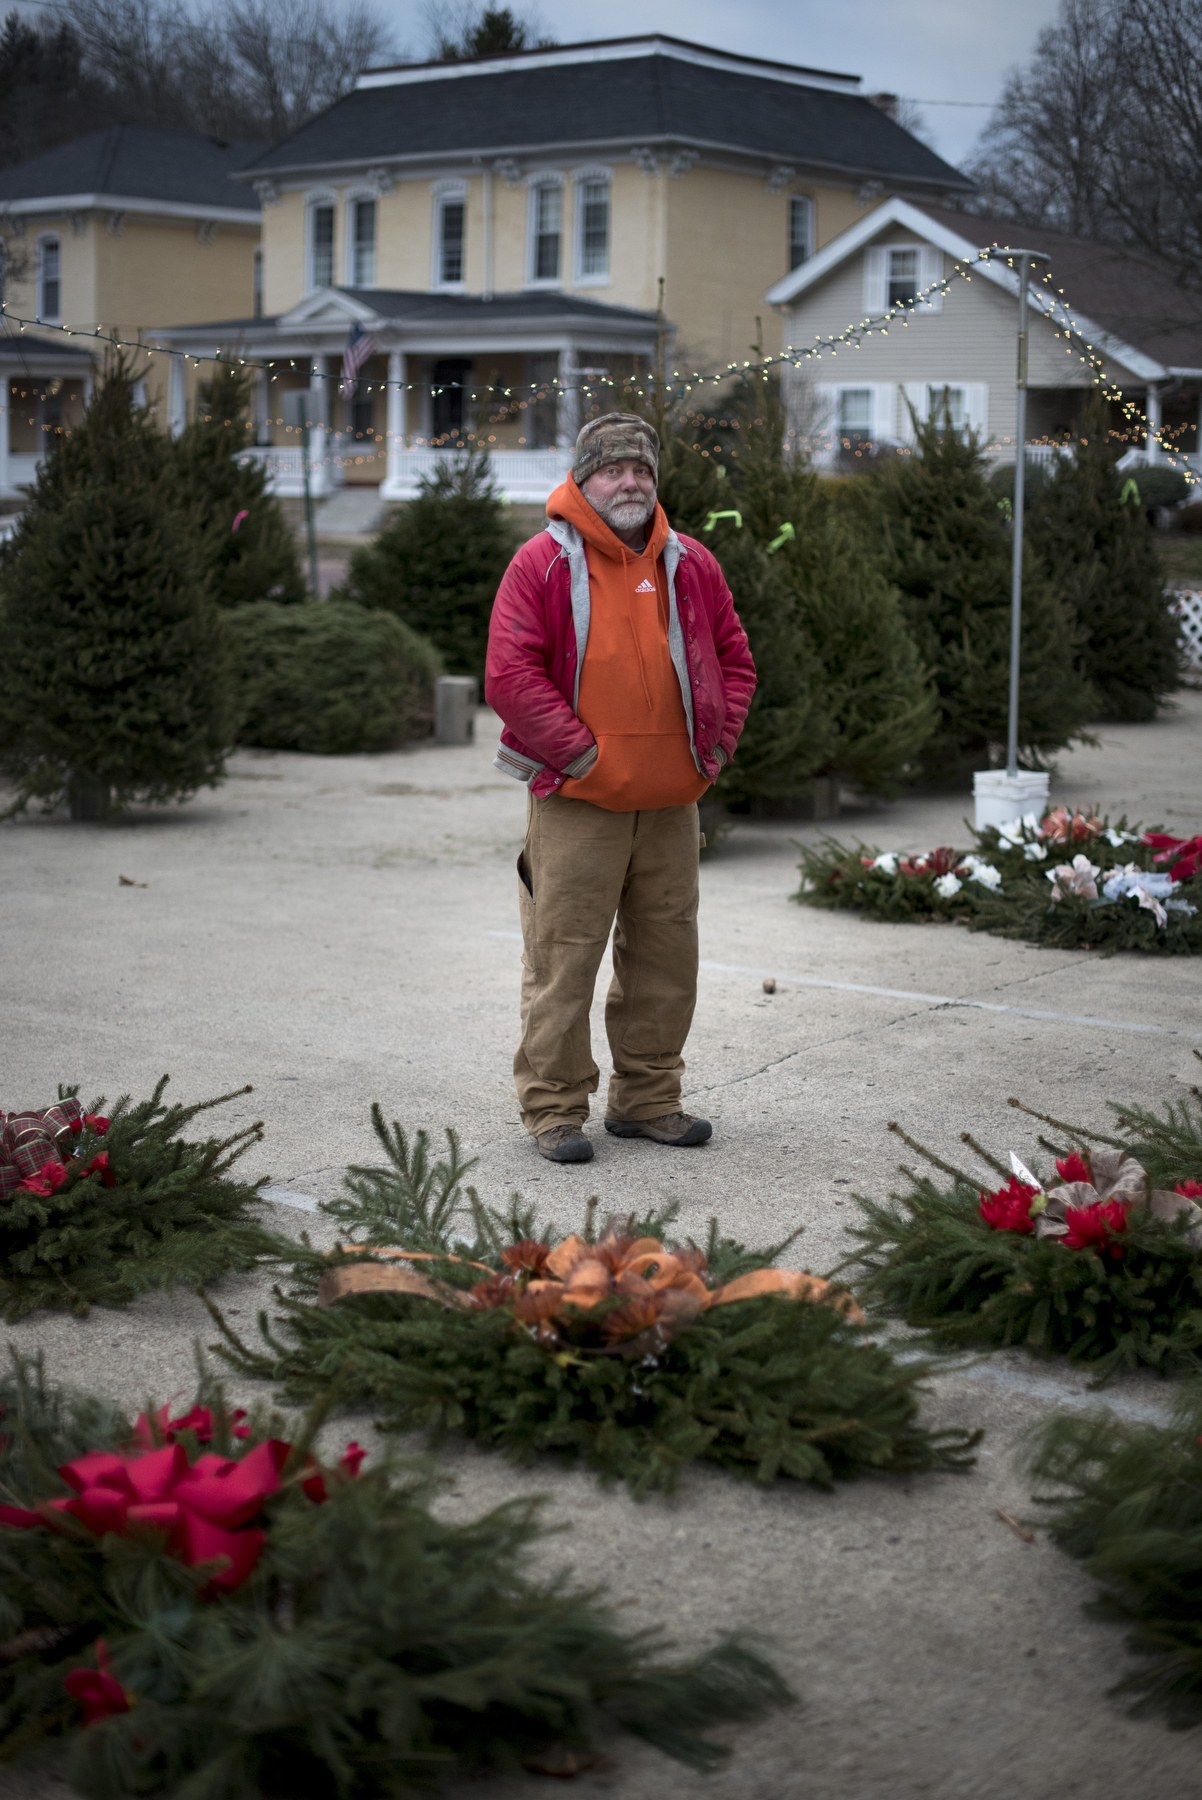 John Oakley, of Nelsonville, Ohio, stands in front of the grave blankets that he and his wife made as a fundraiser for the First Presbyterian Church of Nelsonville on Dec. 9, 2016. Oakley's wife worked as a florist for more than 30 years, and Oakley has helped his wife make grave blankets for the past couple years.